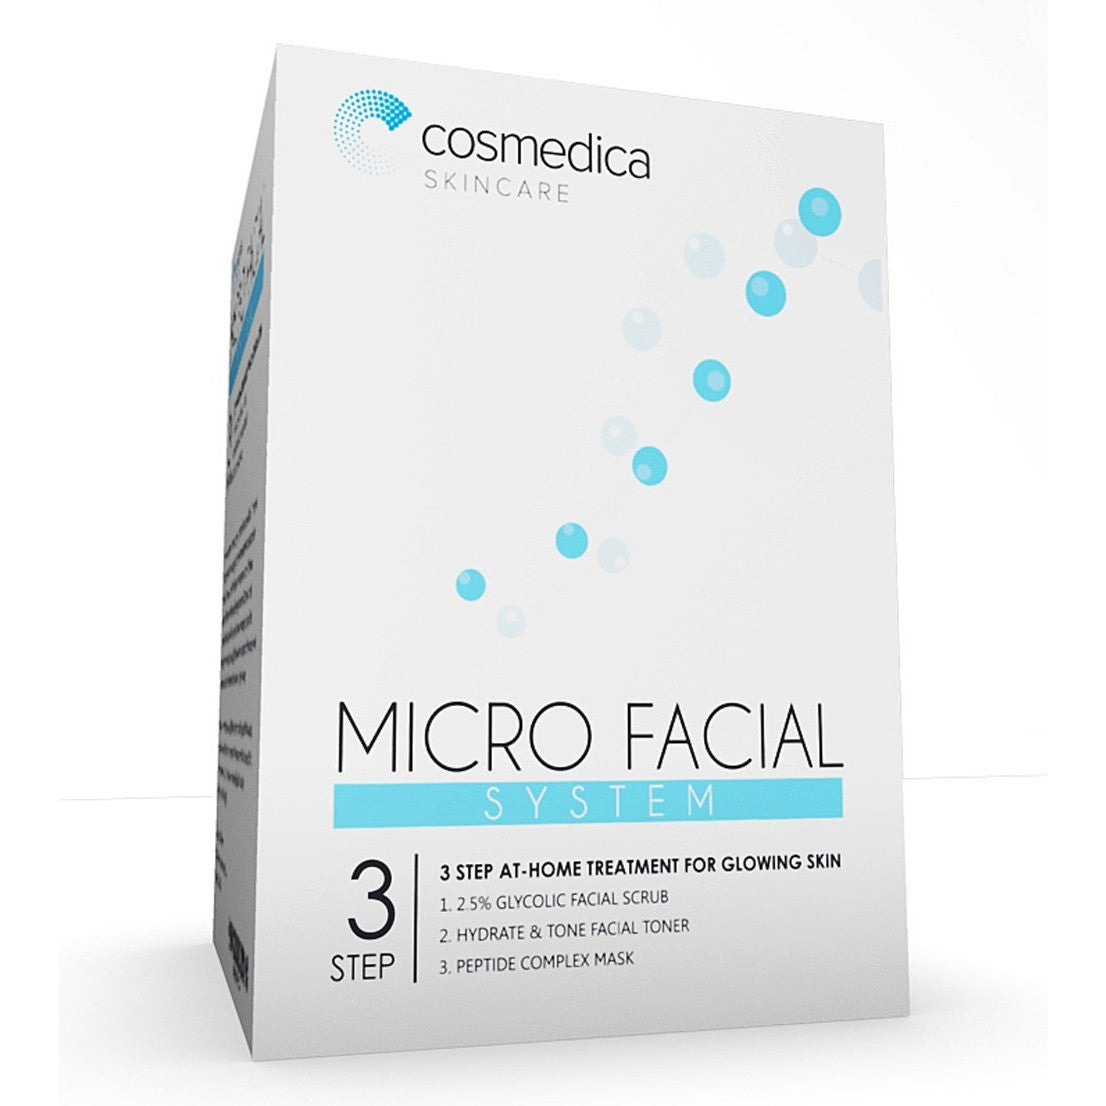 MICRO FACIAL SYSTEM 3 Step At Home Treatment For Glowing Skin - Cosmedica Skincare  - 1